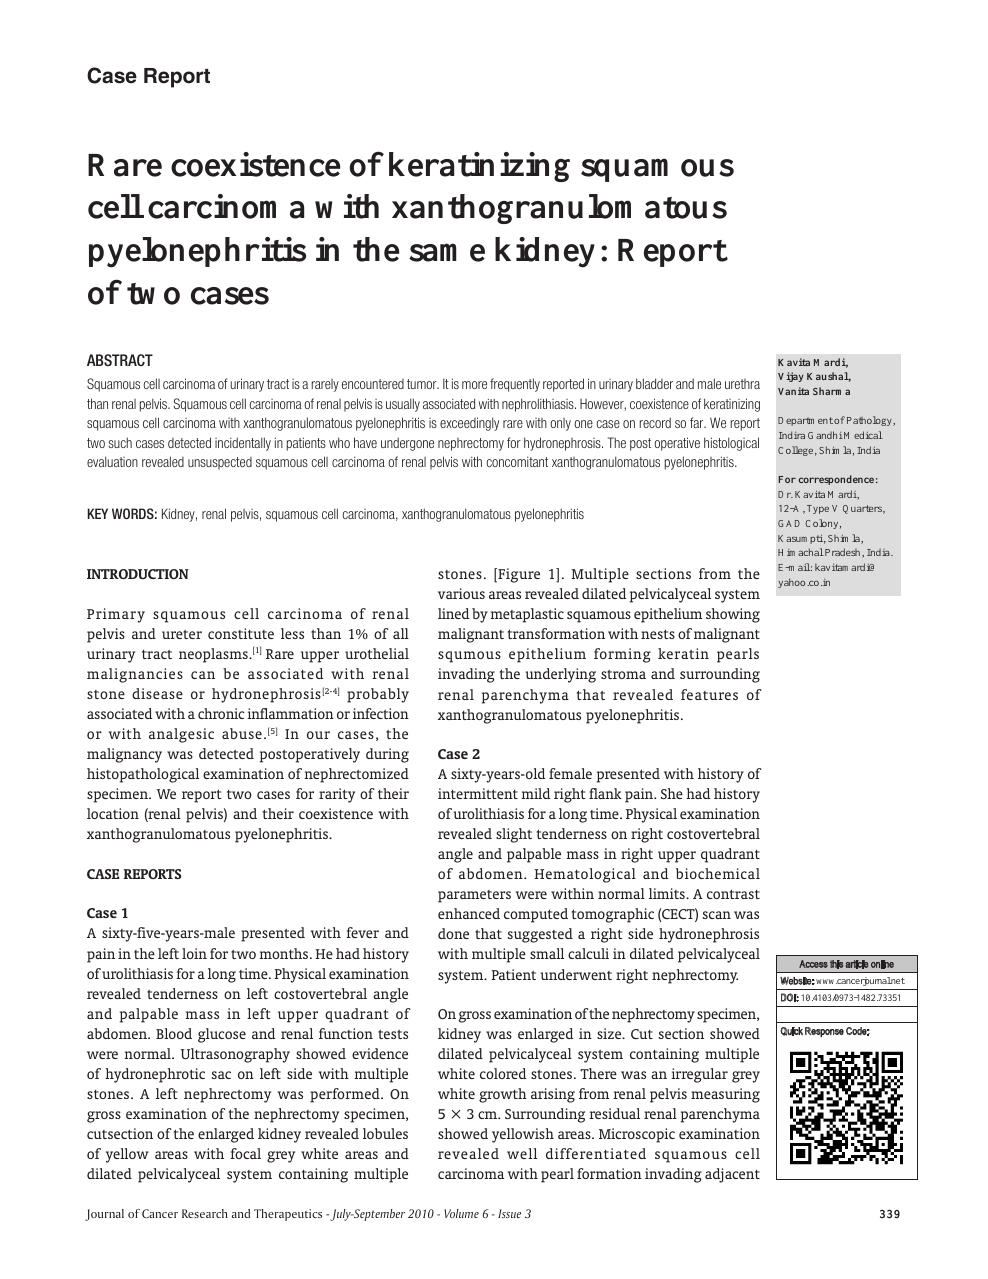 Rare Coexistence Of Keratinizing Squamous Cell Carcinoma With Xanthogranulomatous Pyelonephritis In The Same Kidney Report Of Two Cases Topic Of Research Paper In Clinical Medicine Download Scholarly Article Pdf And Read